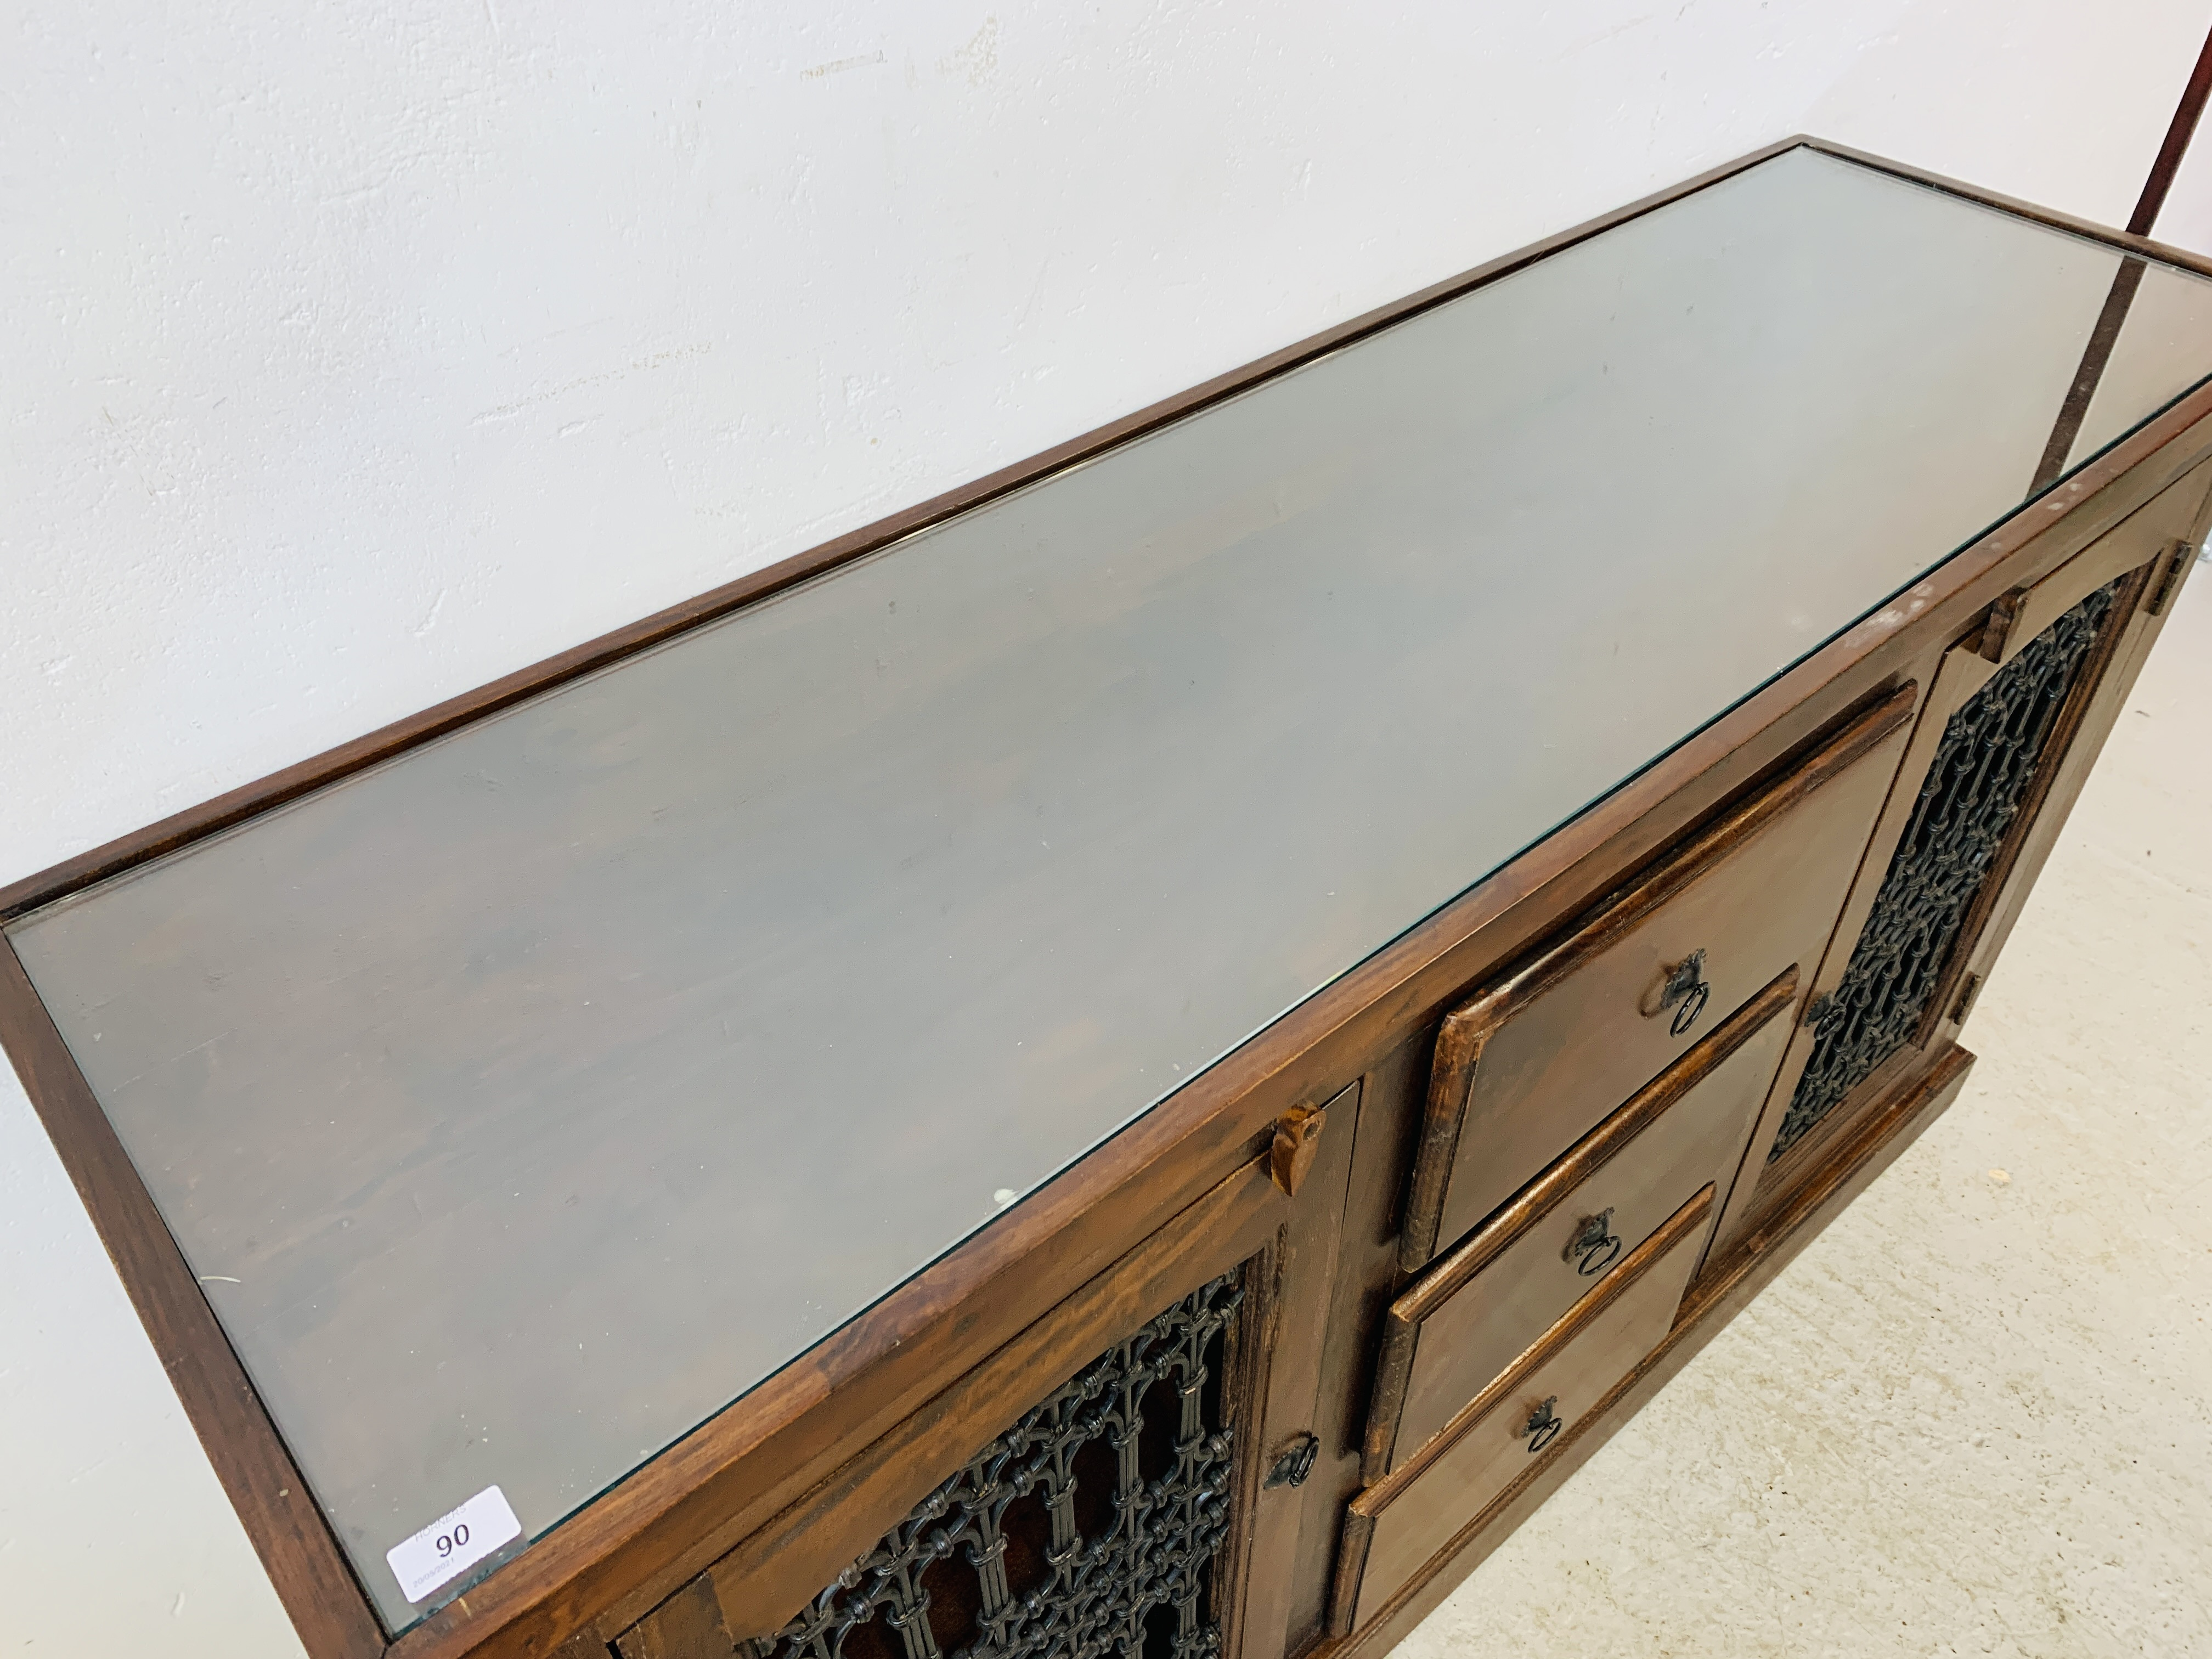 A RUSTIC HARDWOOD COUNTRY & EASTERN STYLE DRESSER BASE, - Image 7 of 9